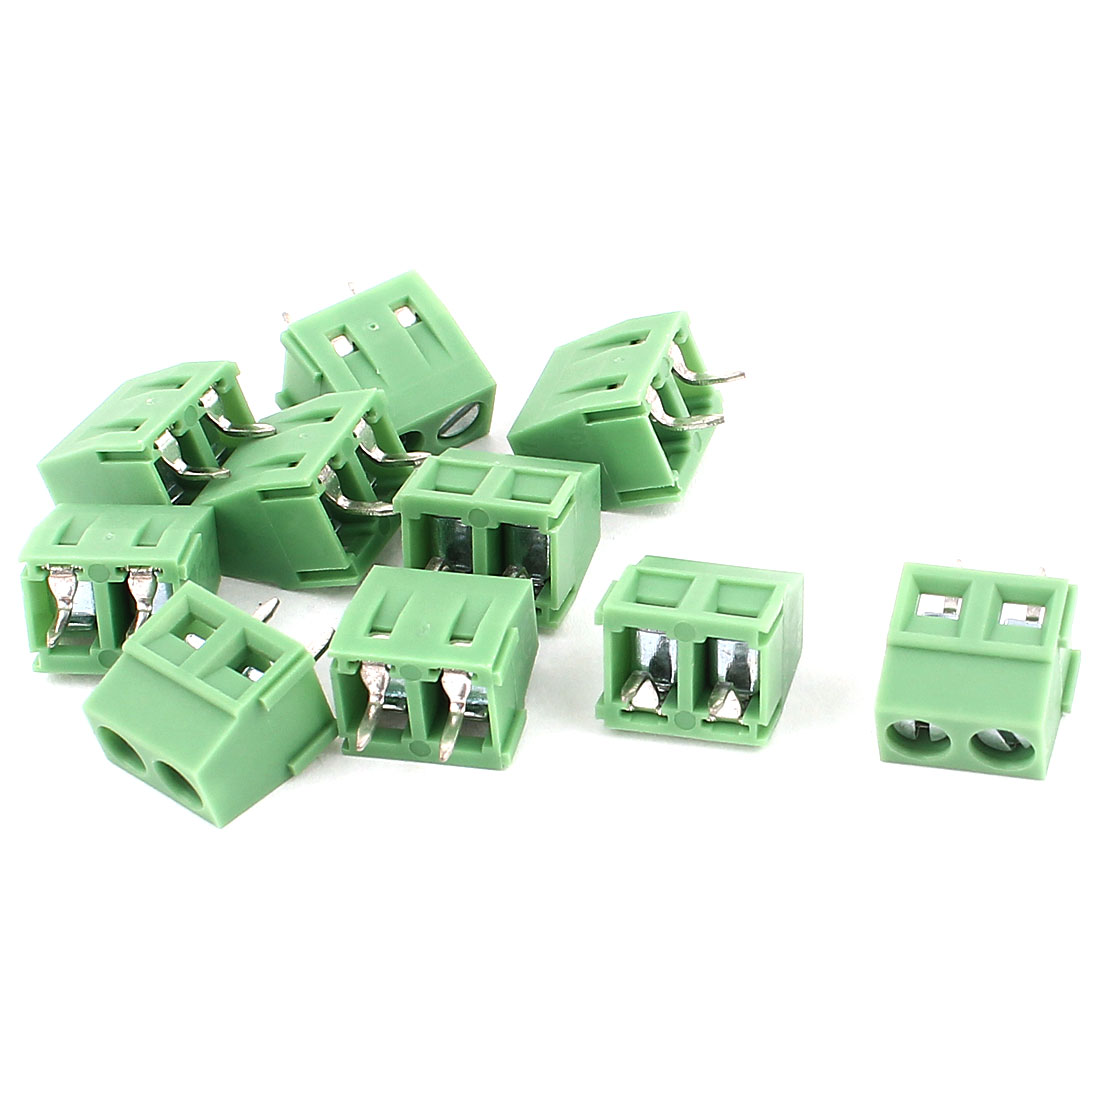 10Pcs 5.5mm Pitch PCB Screw Terminal Blocks Connectors 300V/10A